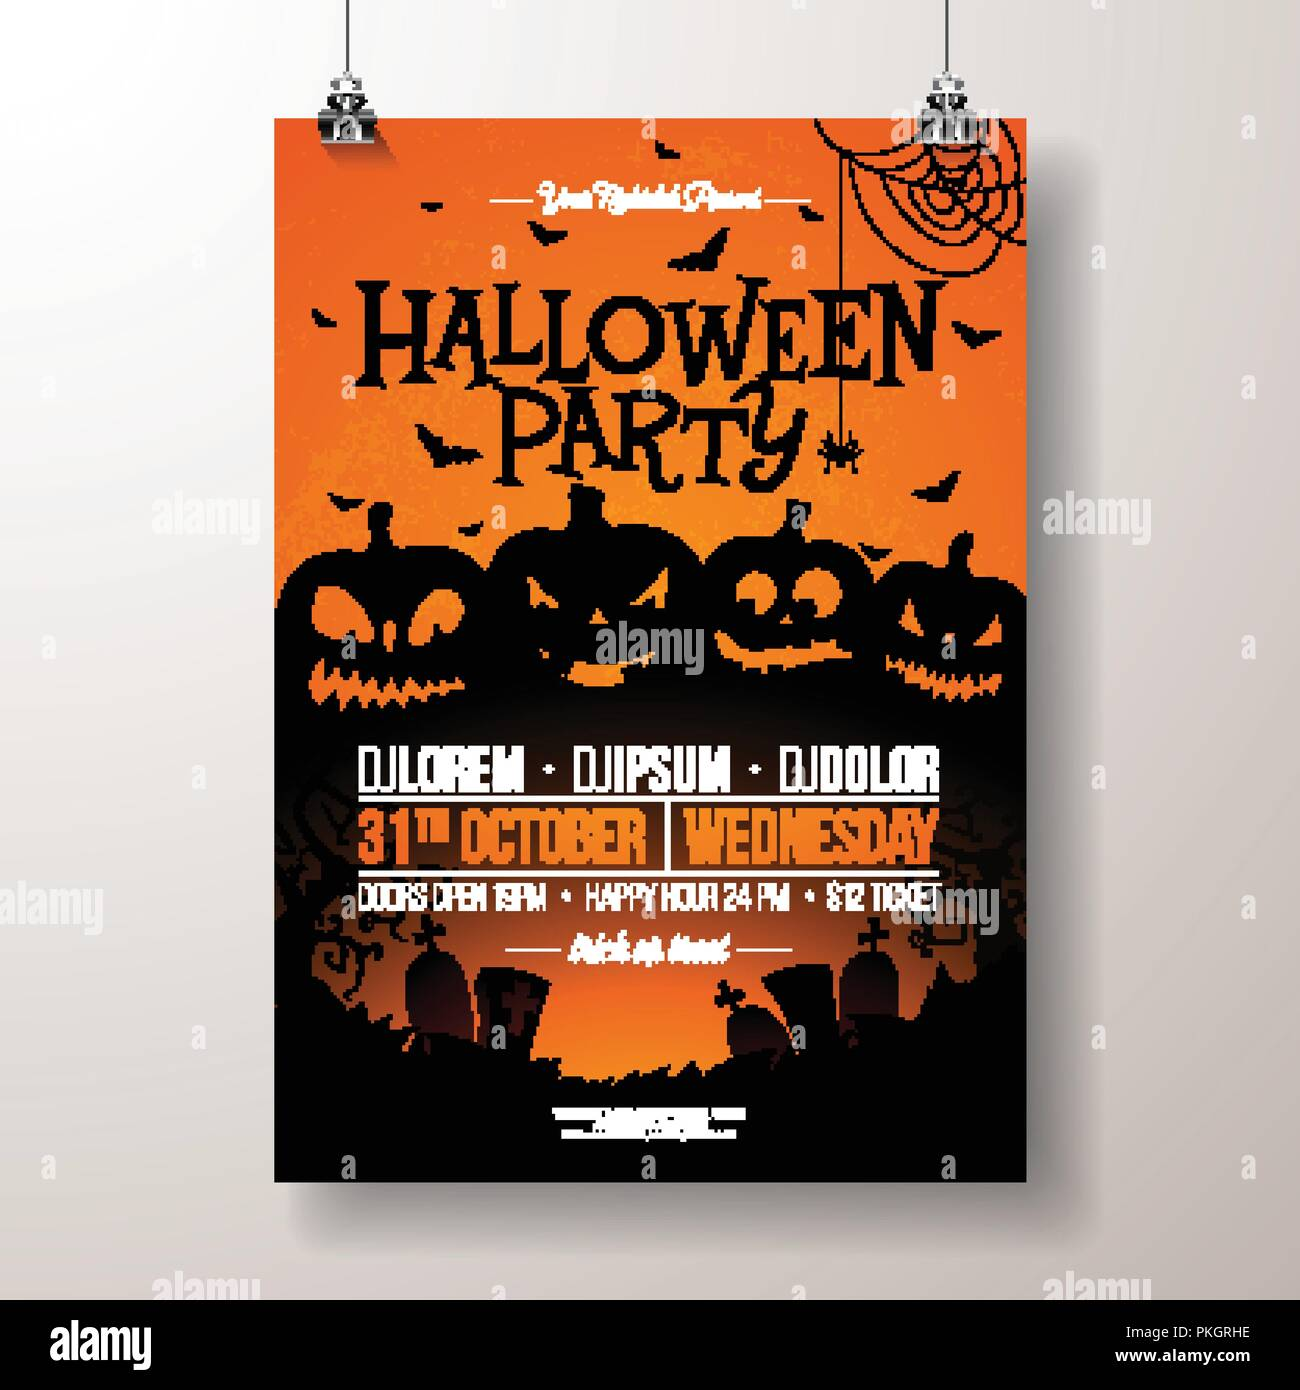 halloween party flyer vector illustration with scary faced pumpkins